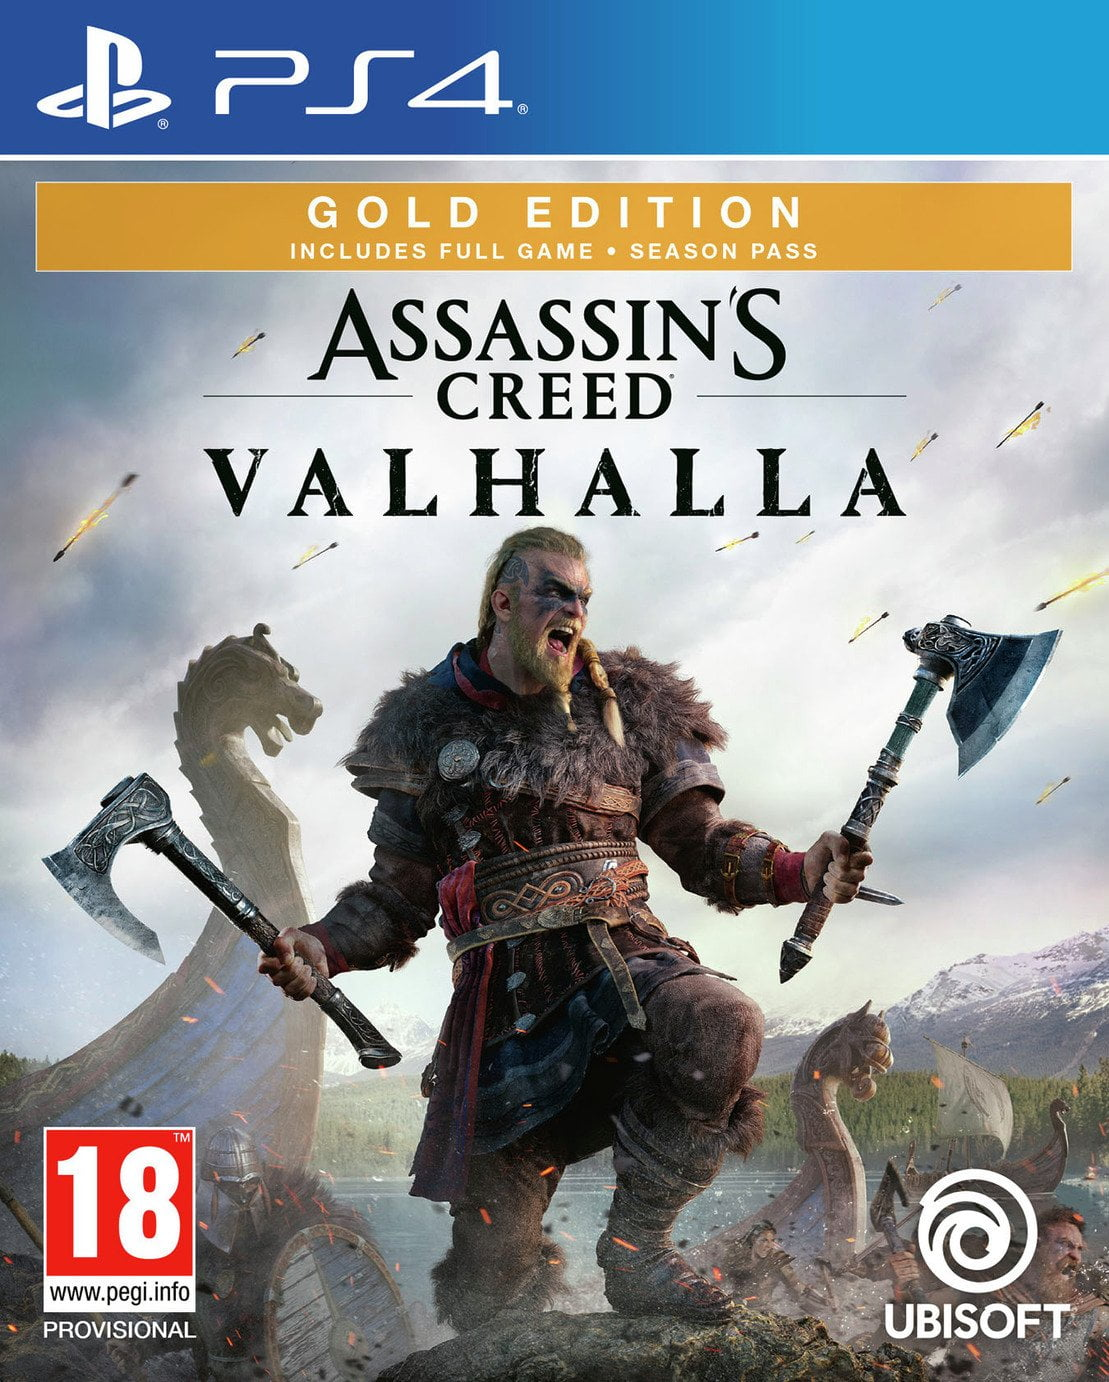 Assassin's Creed Valhalla Gold Edition PS4 Game Pre-Order